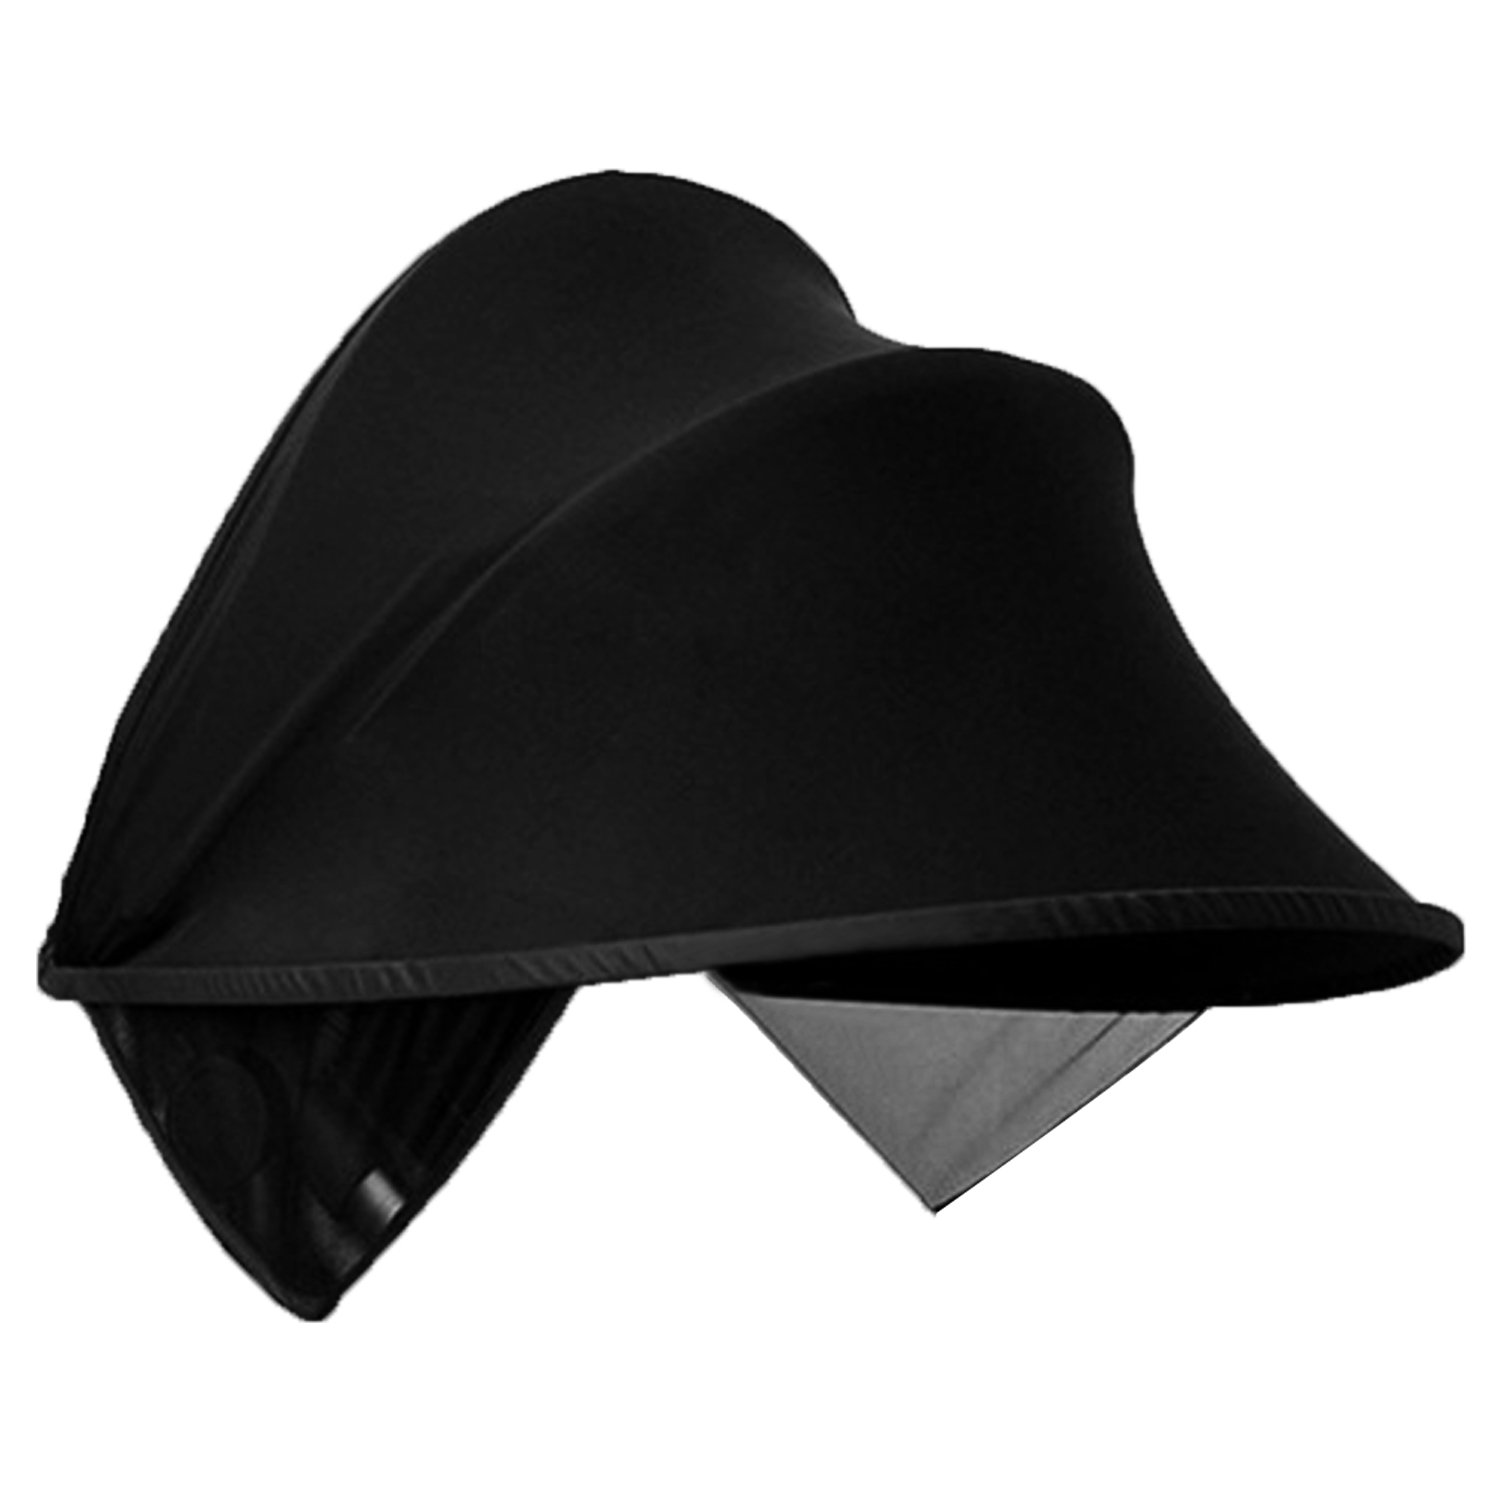 Black Sun Shade Hood Cover for Baby Carriages Strollers Pushchair Car Seats with Great UV Protection Performance Gosear